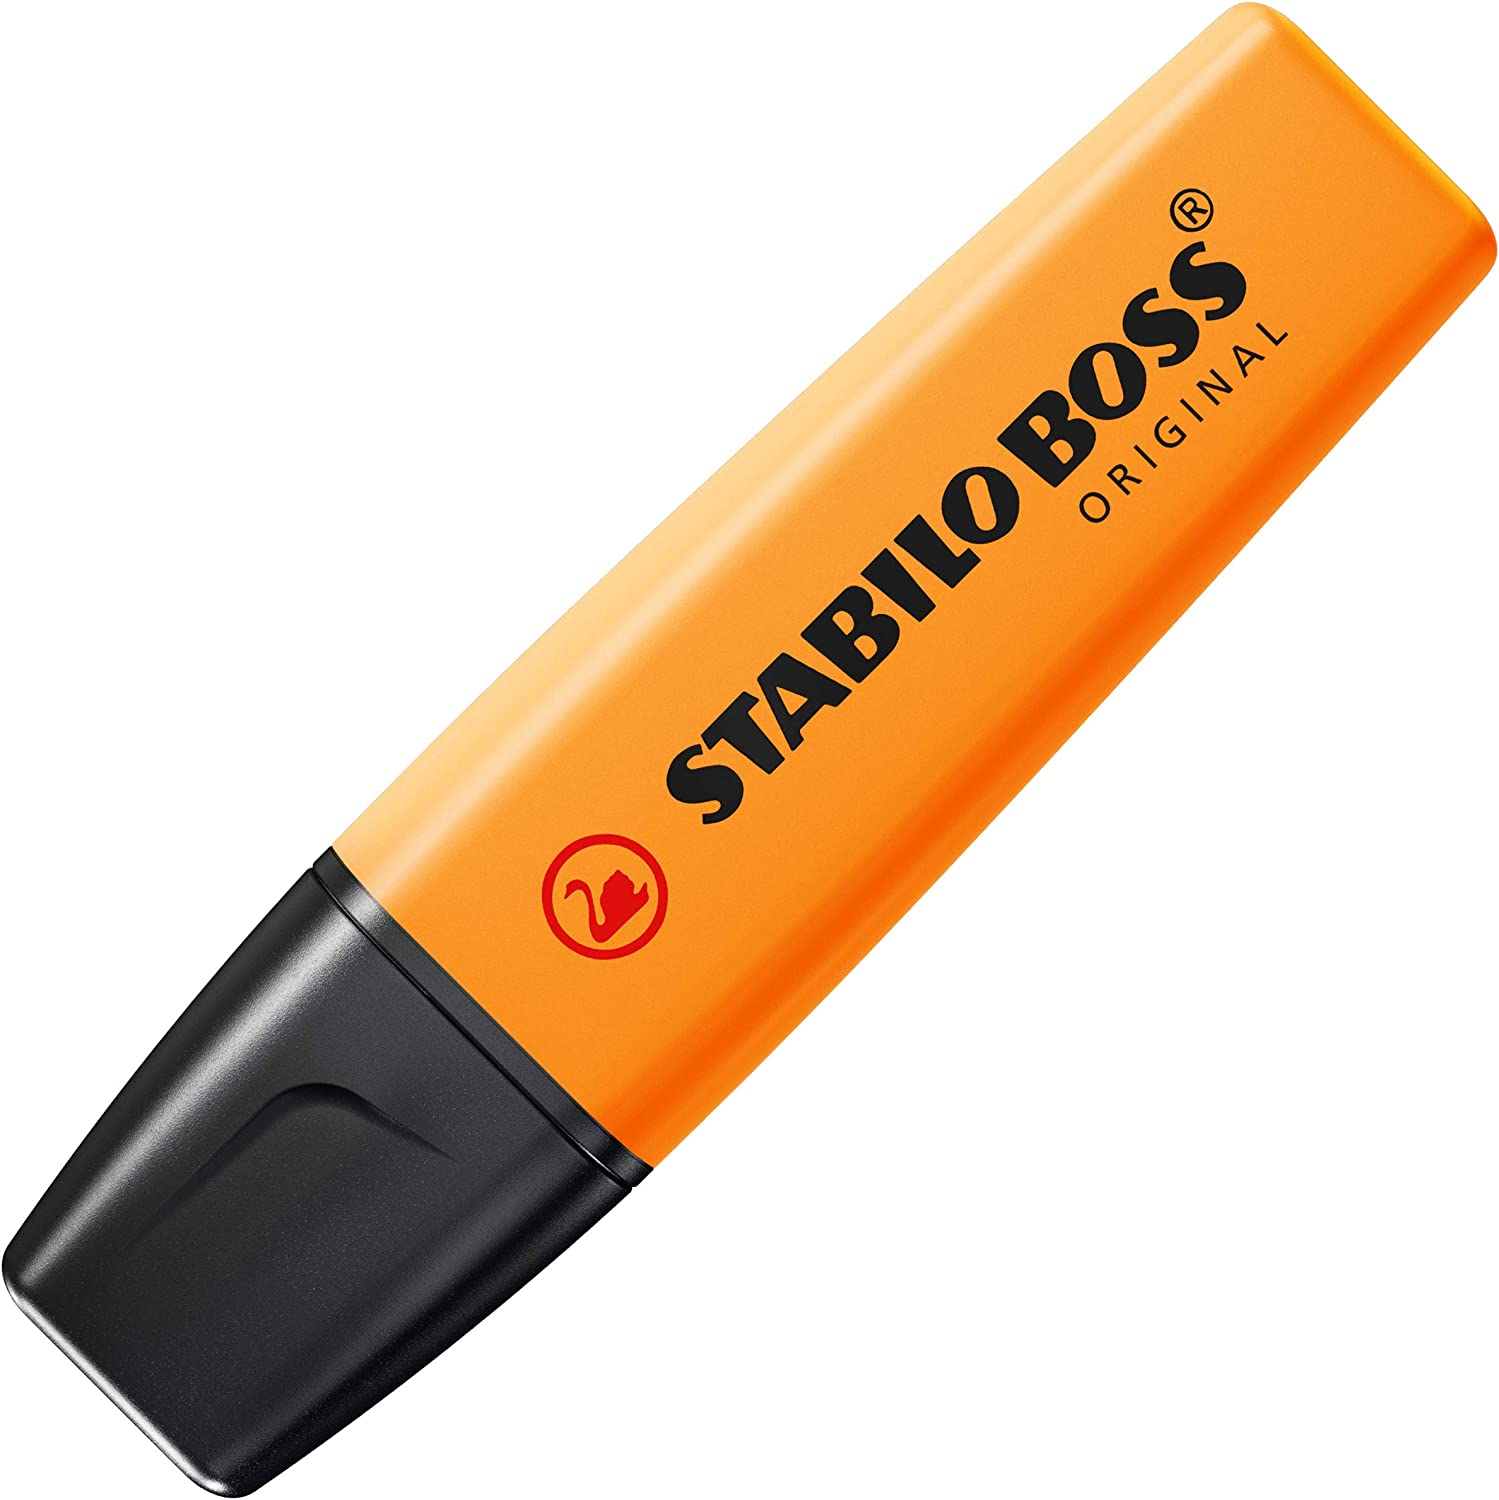 Stabilo 716116 - Marcador fluorescente, color naranja: Amazon.es ...